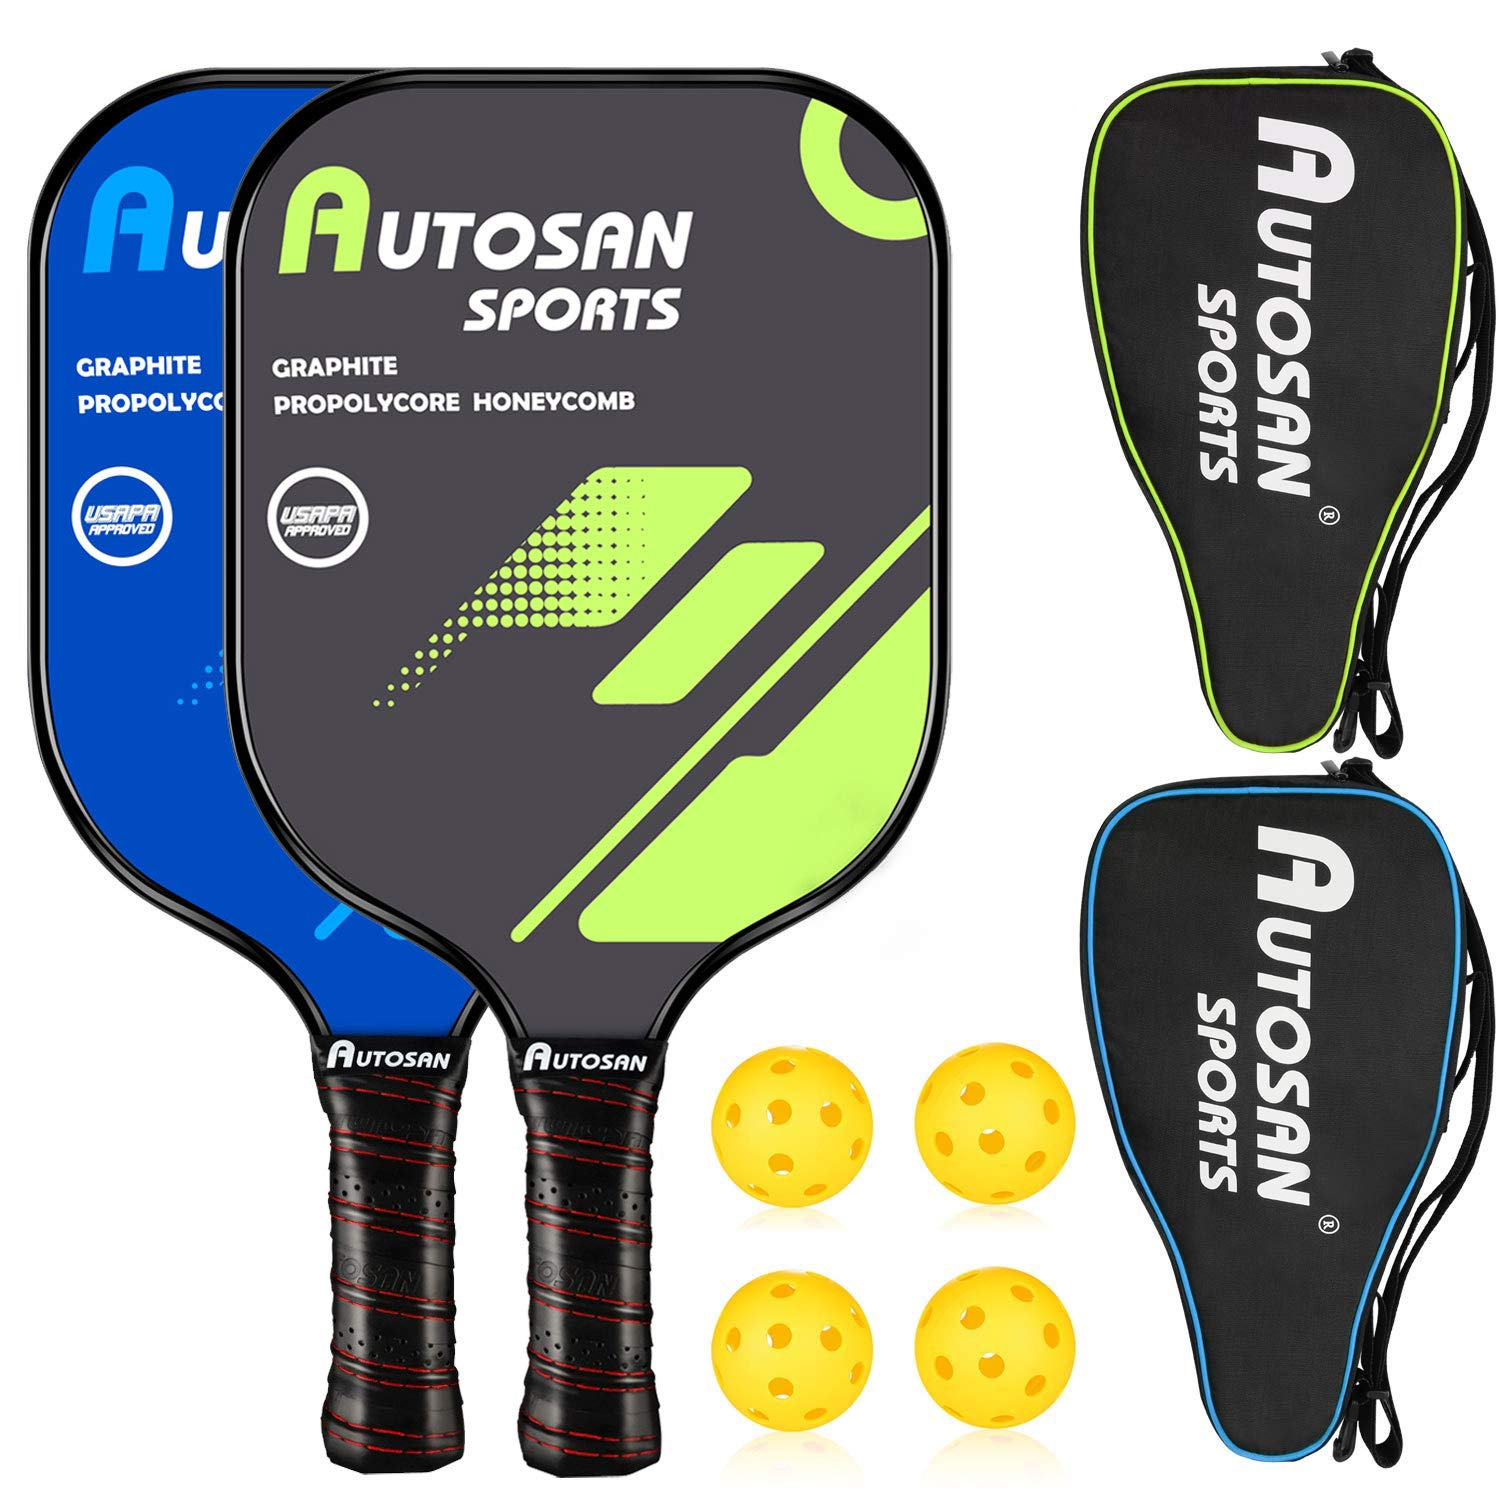 AUTOSAN Pickleball Paddle Graphite Pickleball Racket Set with Sling Bag & EBook Polymer Honeycomb Core Pickleball Paddle Ultra Cushion Grip Low Profile Edge Bundle USAPA Approved Pickleball Paddle